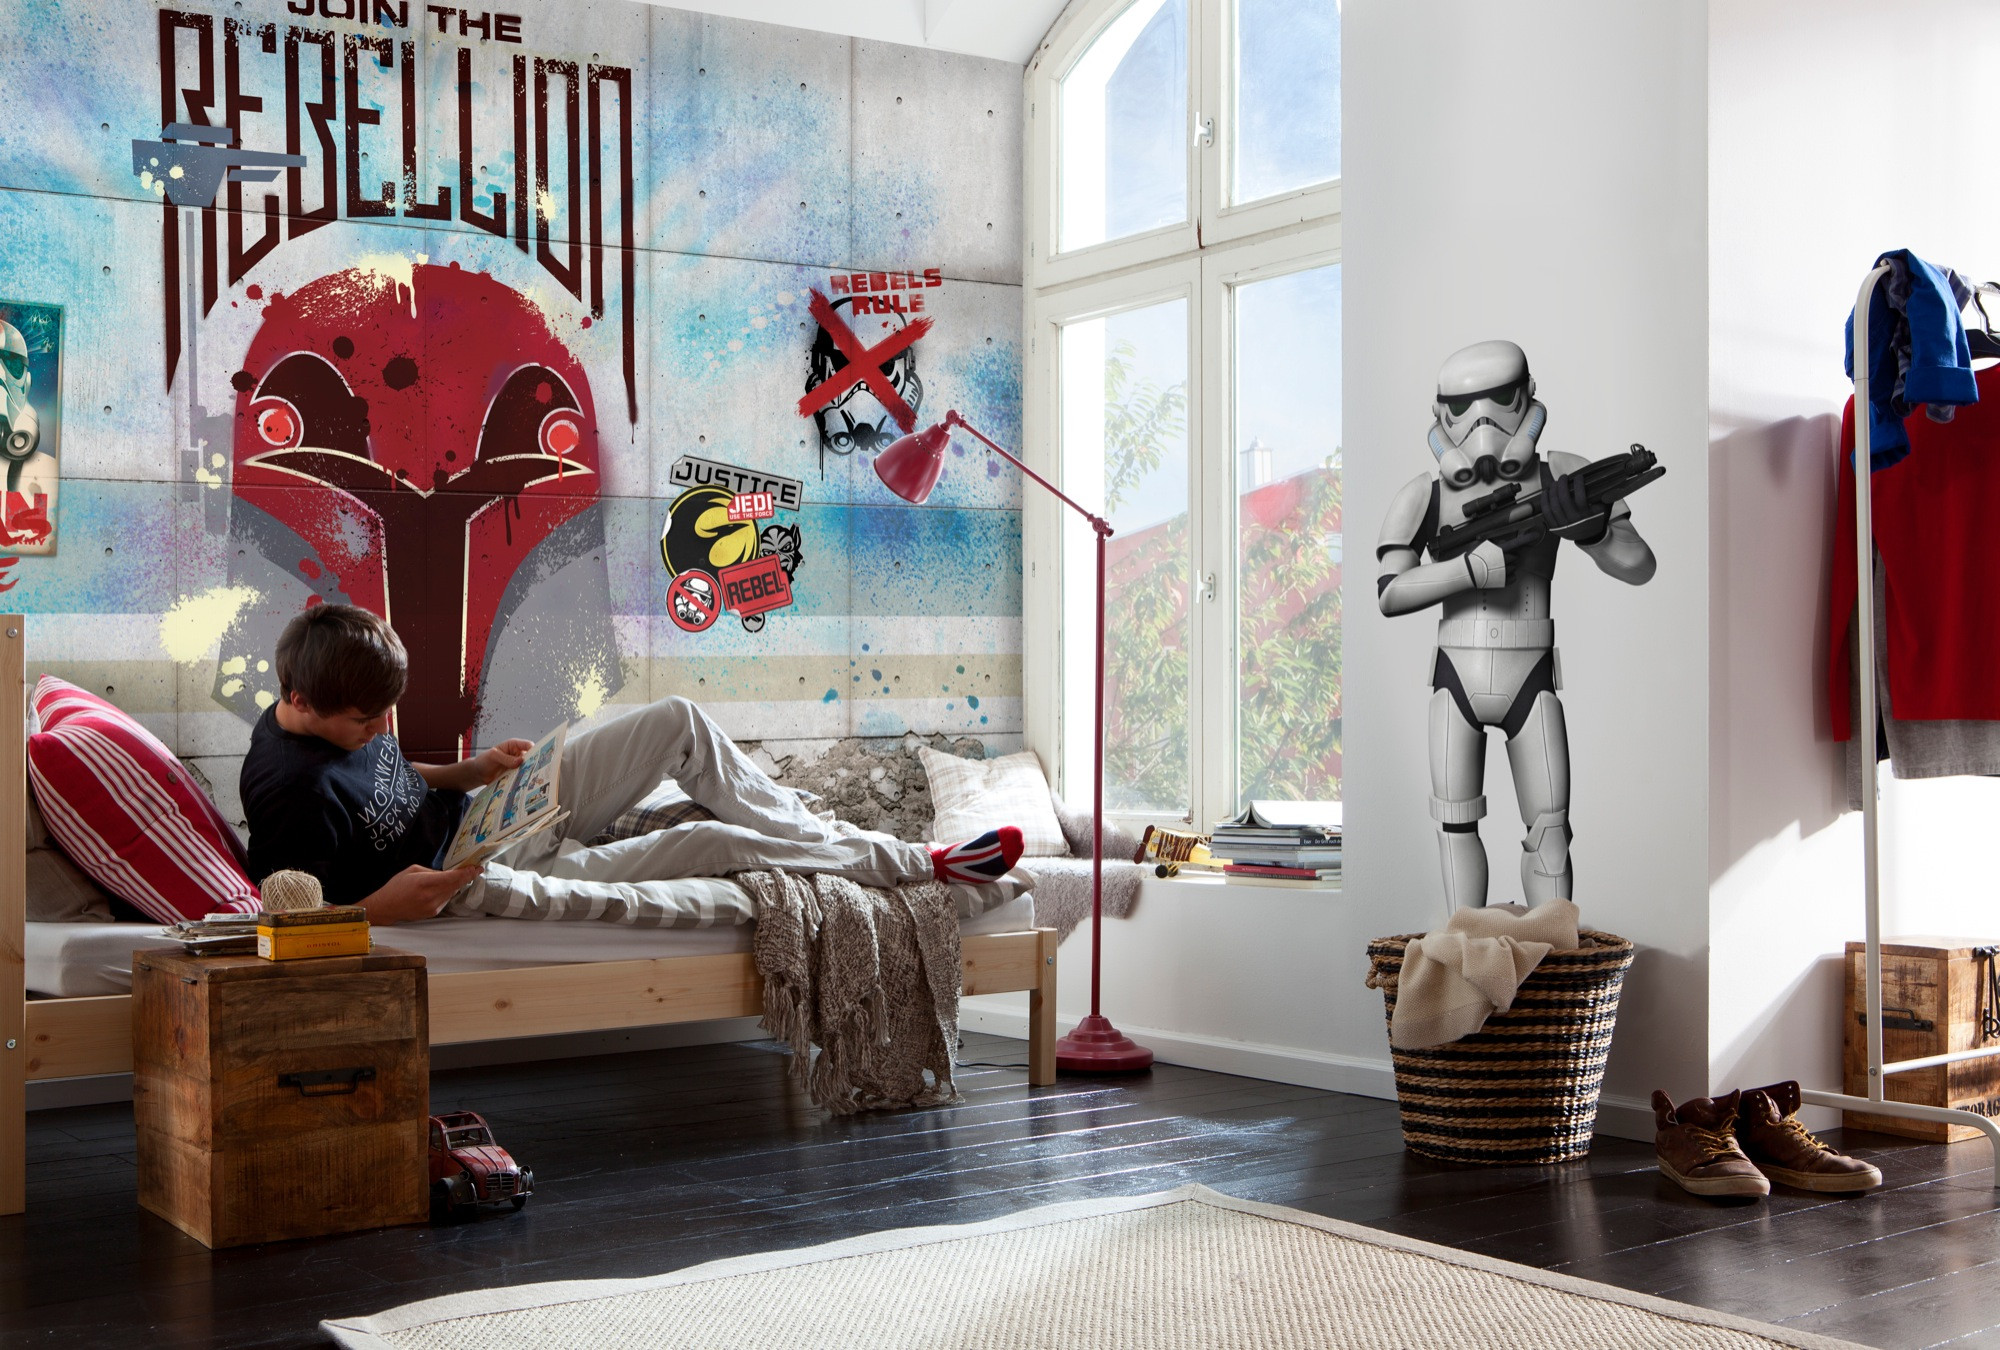 Star Wars Rebels Wall